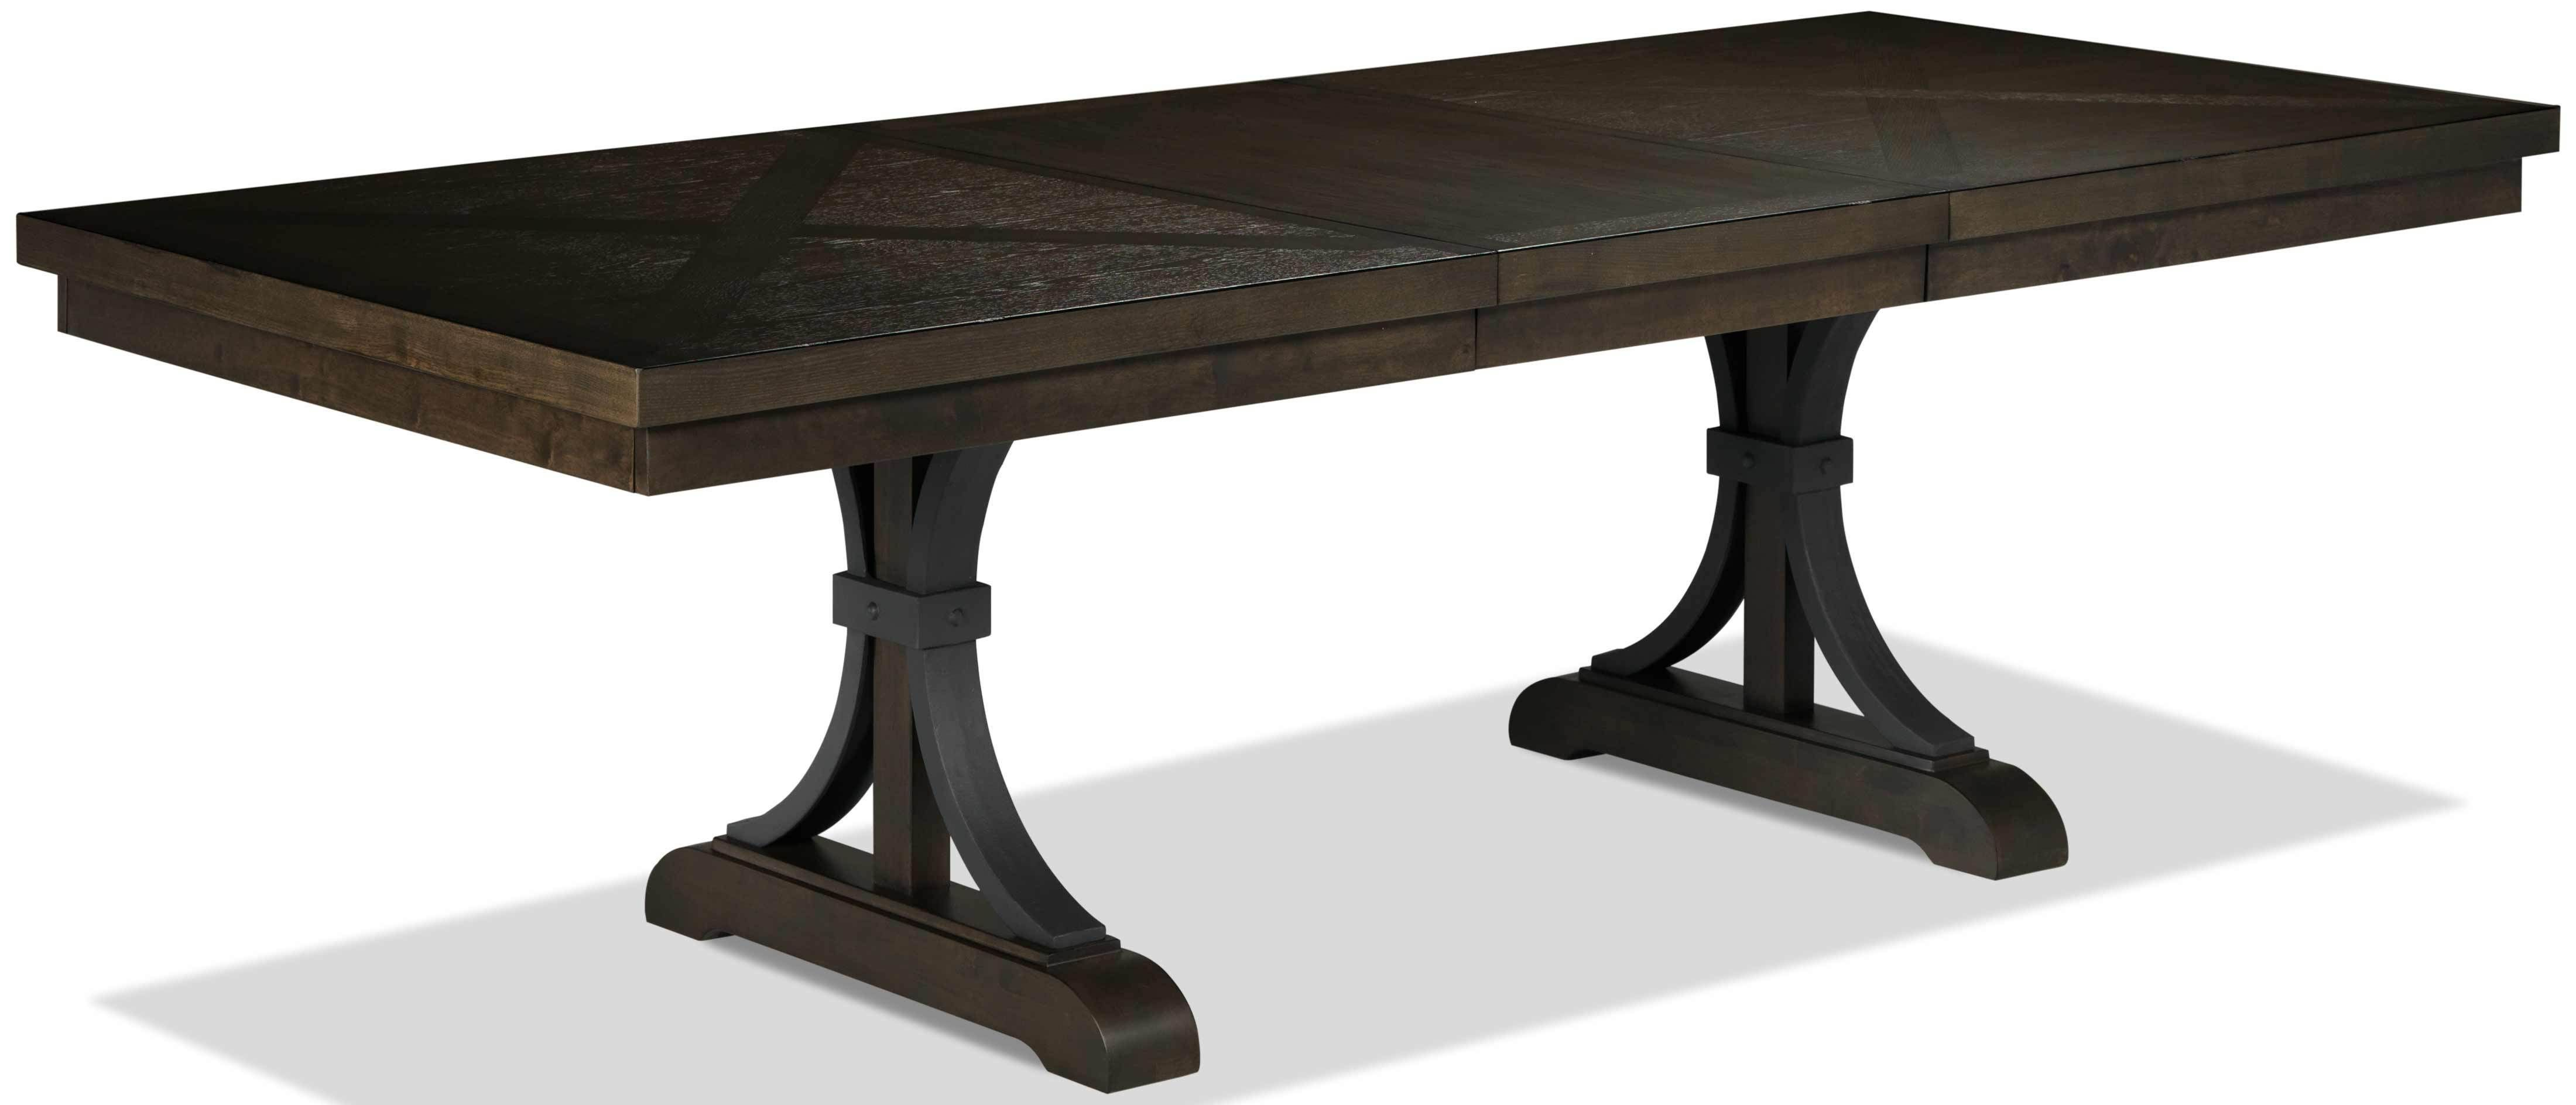 Flanigan Dining Table Distressed Espresso Dining Table Dining